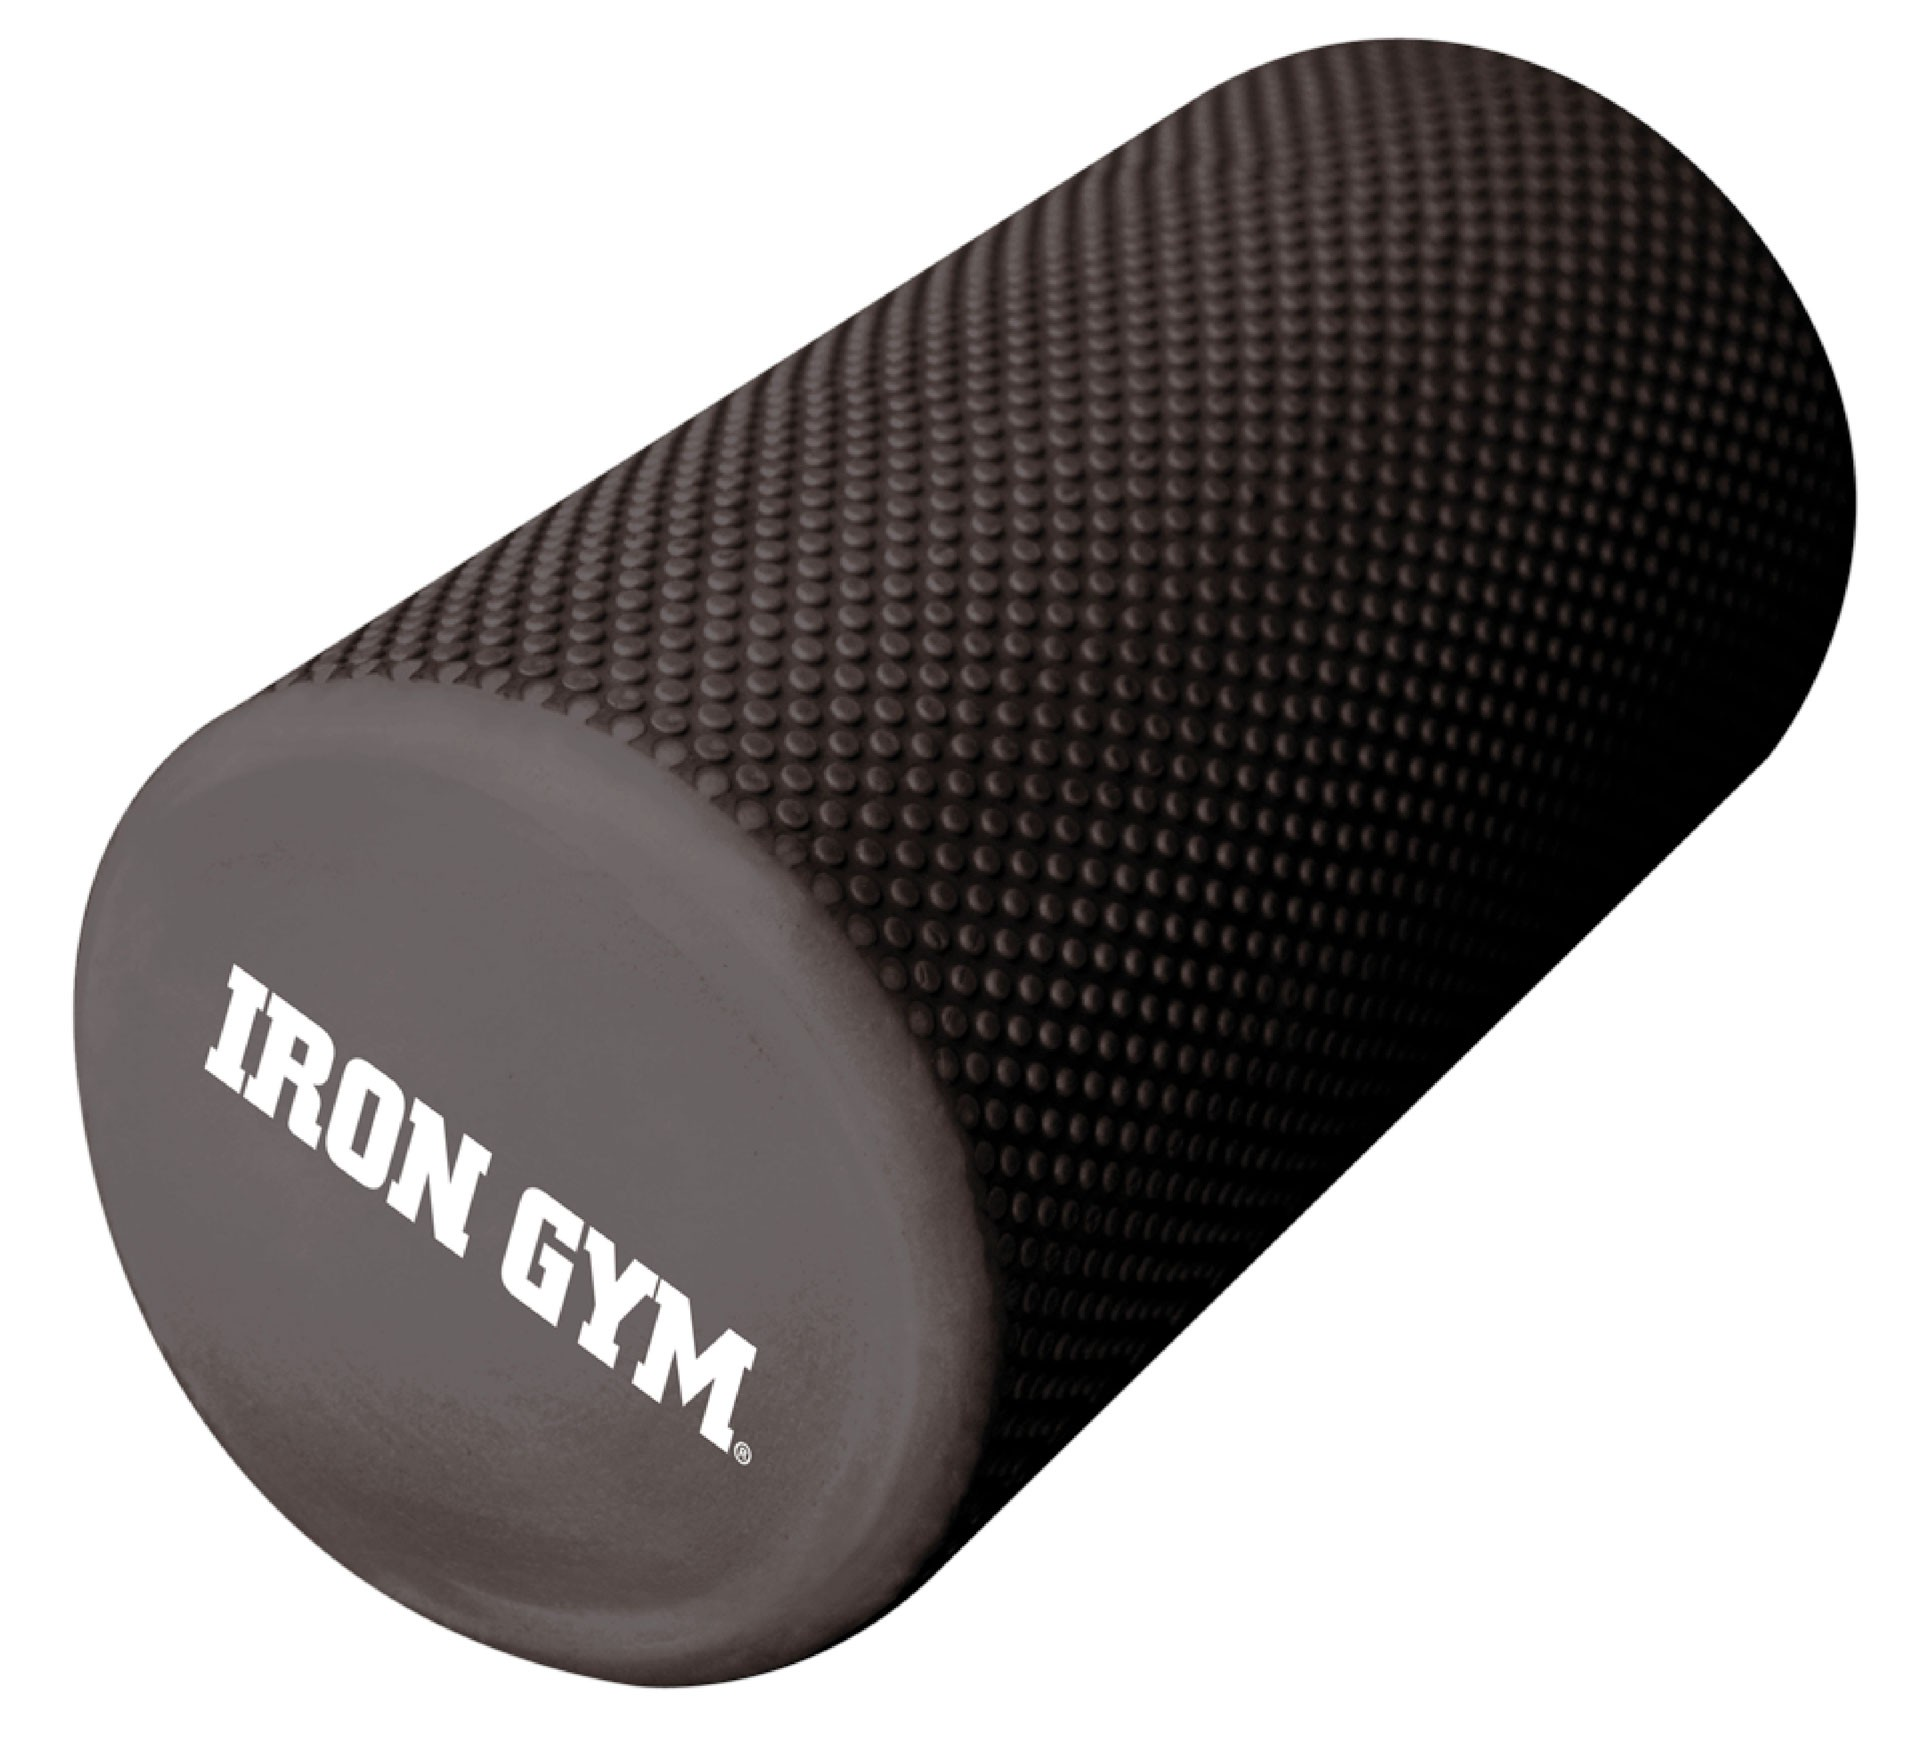 Iron Gym massage roller